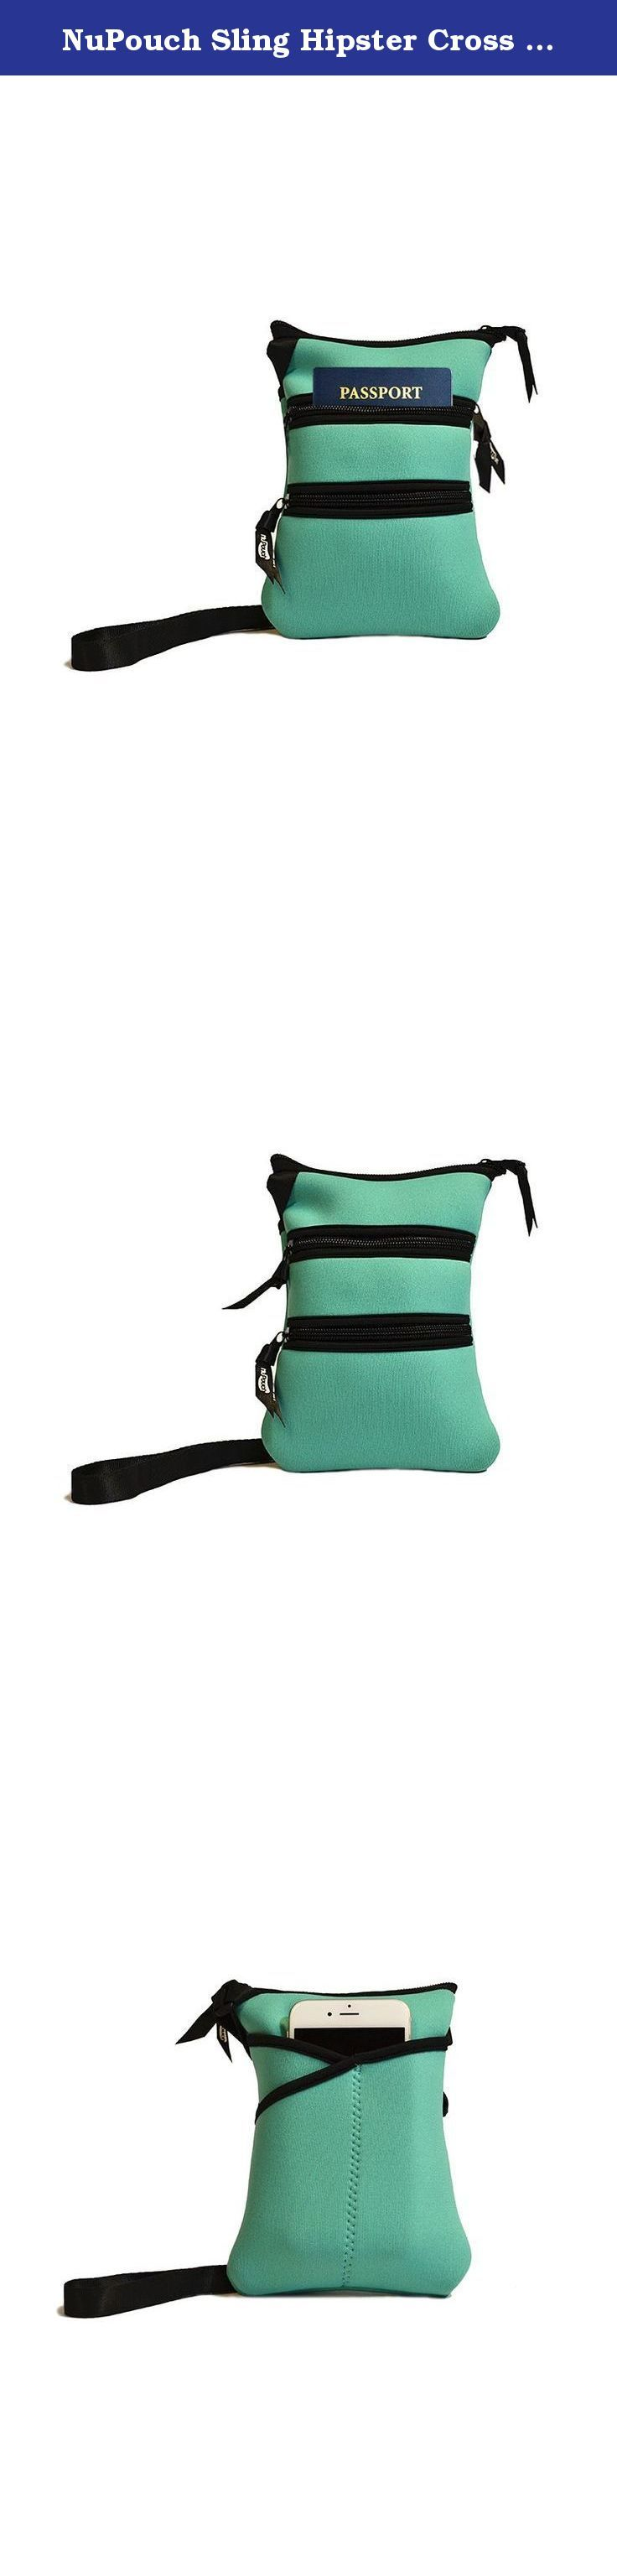 NuPouch Sling Hipster Cross Body Purse Women's Handbag, Teal. The NuPouch sling is a great everyday purse option for those who pack light or as a travel bag to hold passports, cards and money. Perfect for a night out or as a smartphone pouch. Made from neoprene it is shock absorbent, water resistant and machine washable. Available in a variety of NuPouch Patterns.